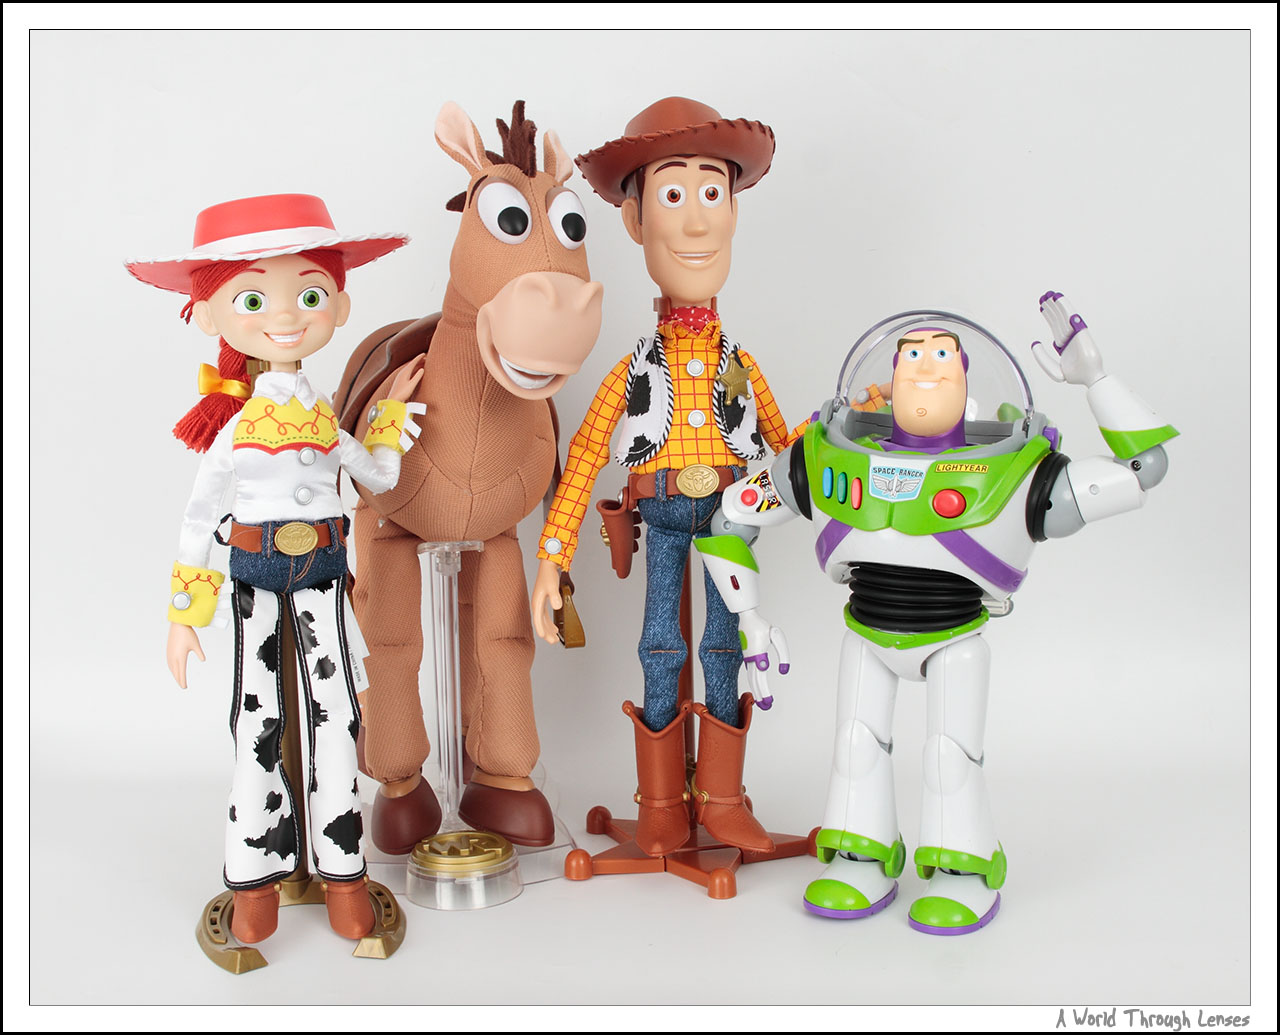 The Toys Story Collection  Part 2  A World Through Lenses